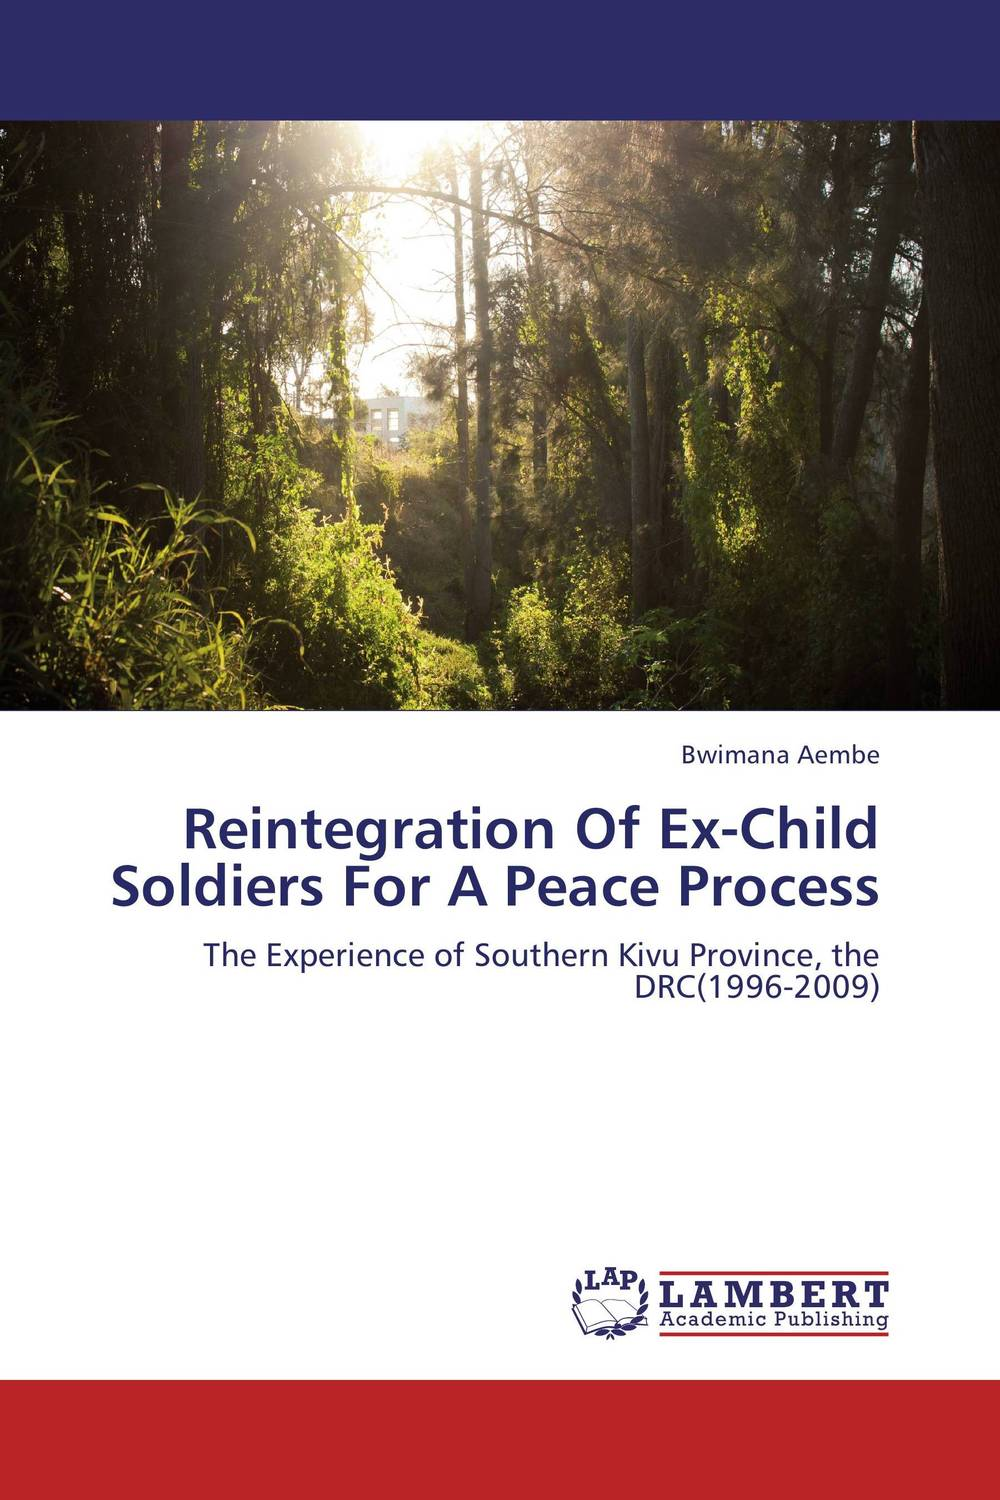 Reintegration Of Ex-Child Soldiers For A Peace Process bwimana aembe reintegration of ex child soldiers for a peace process